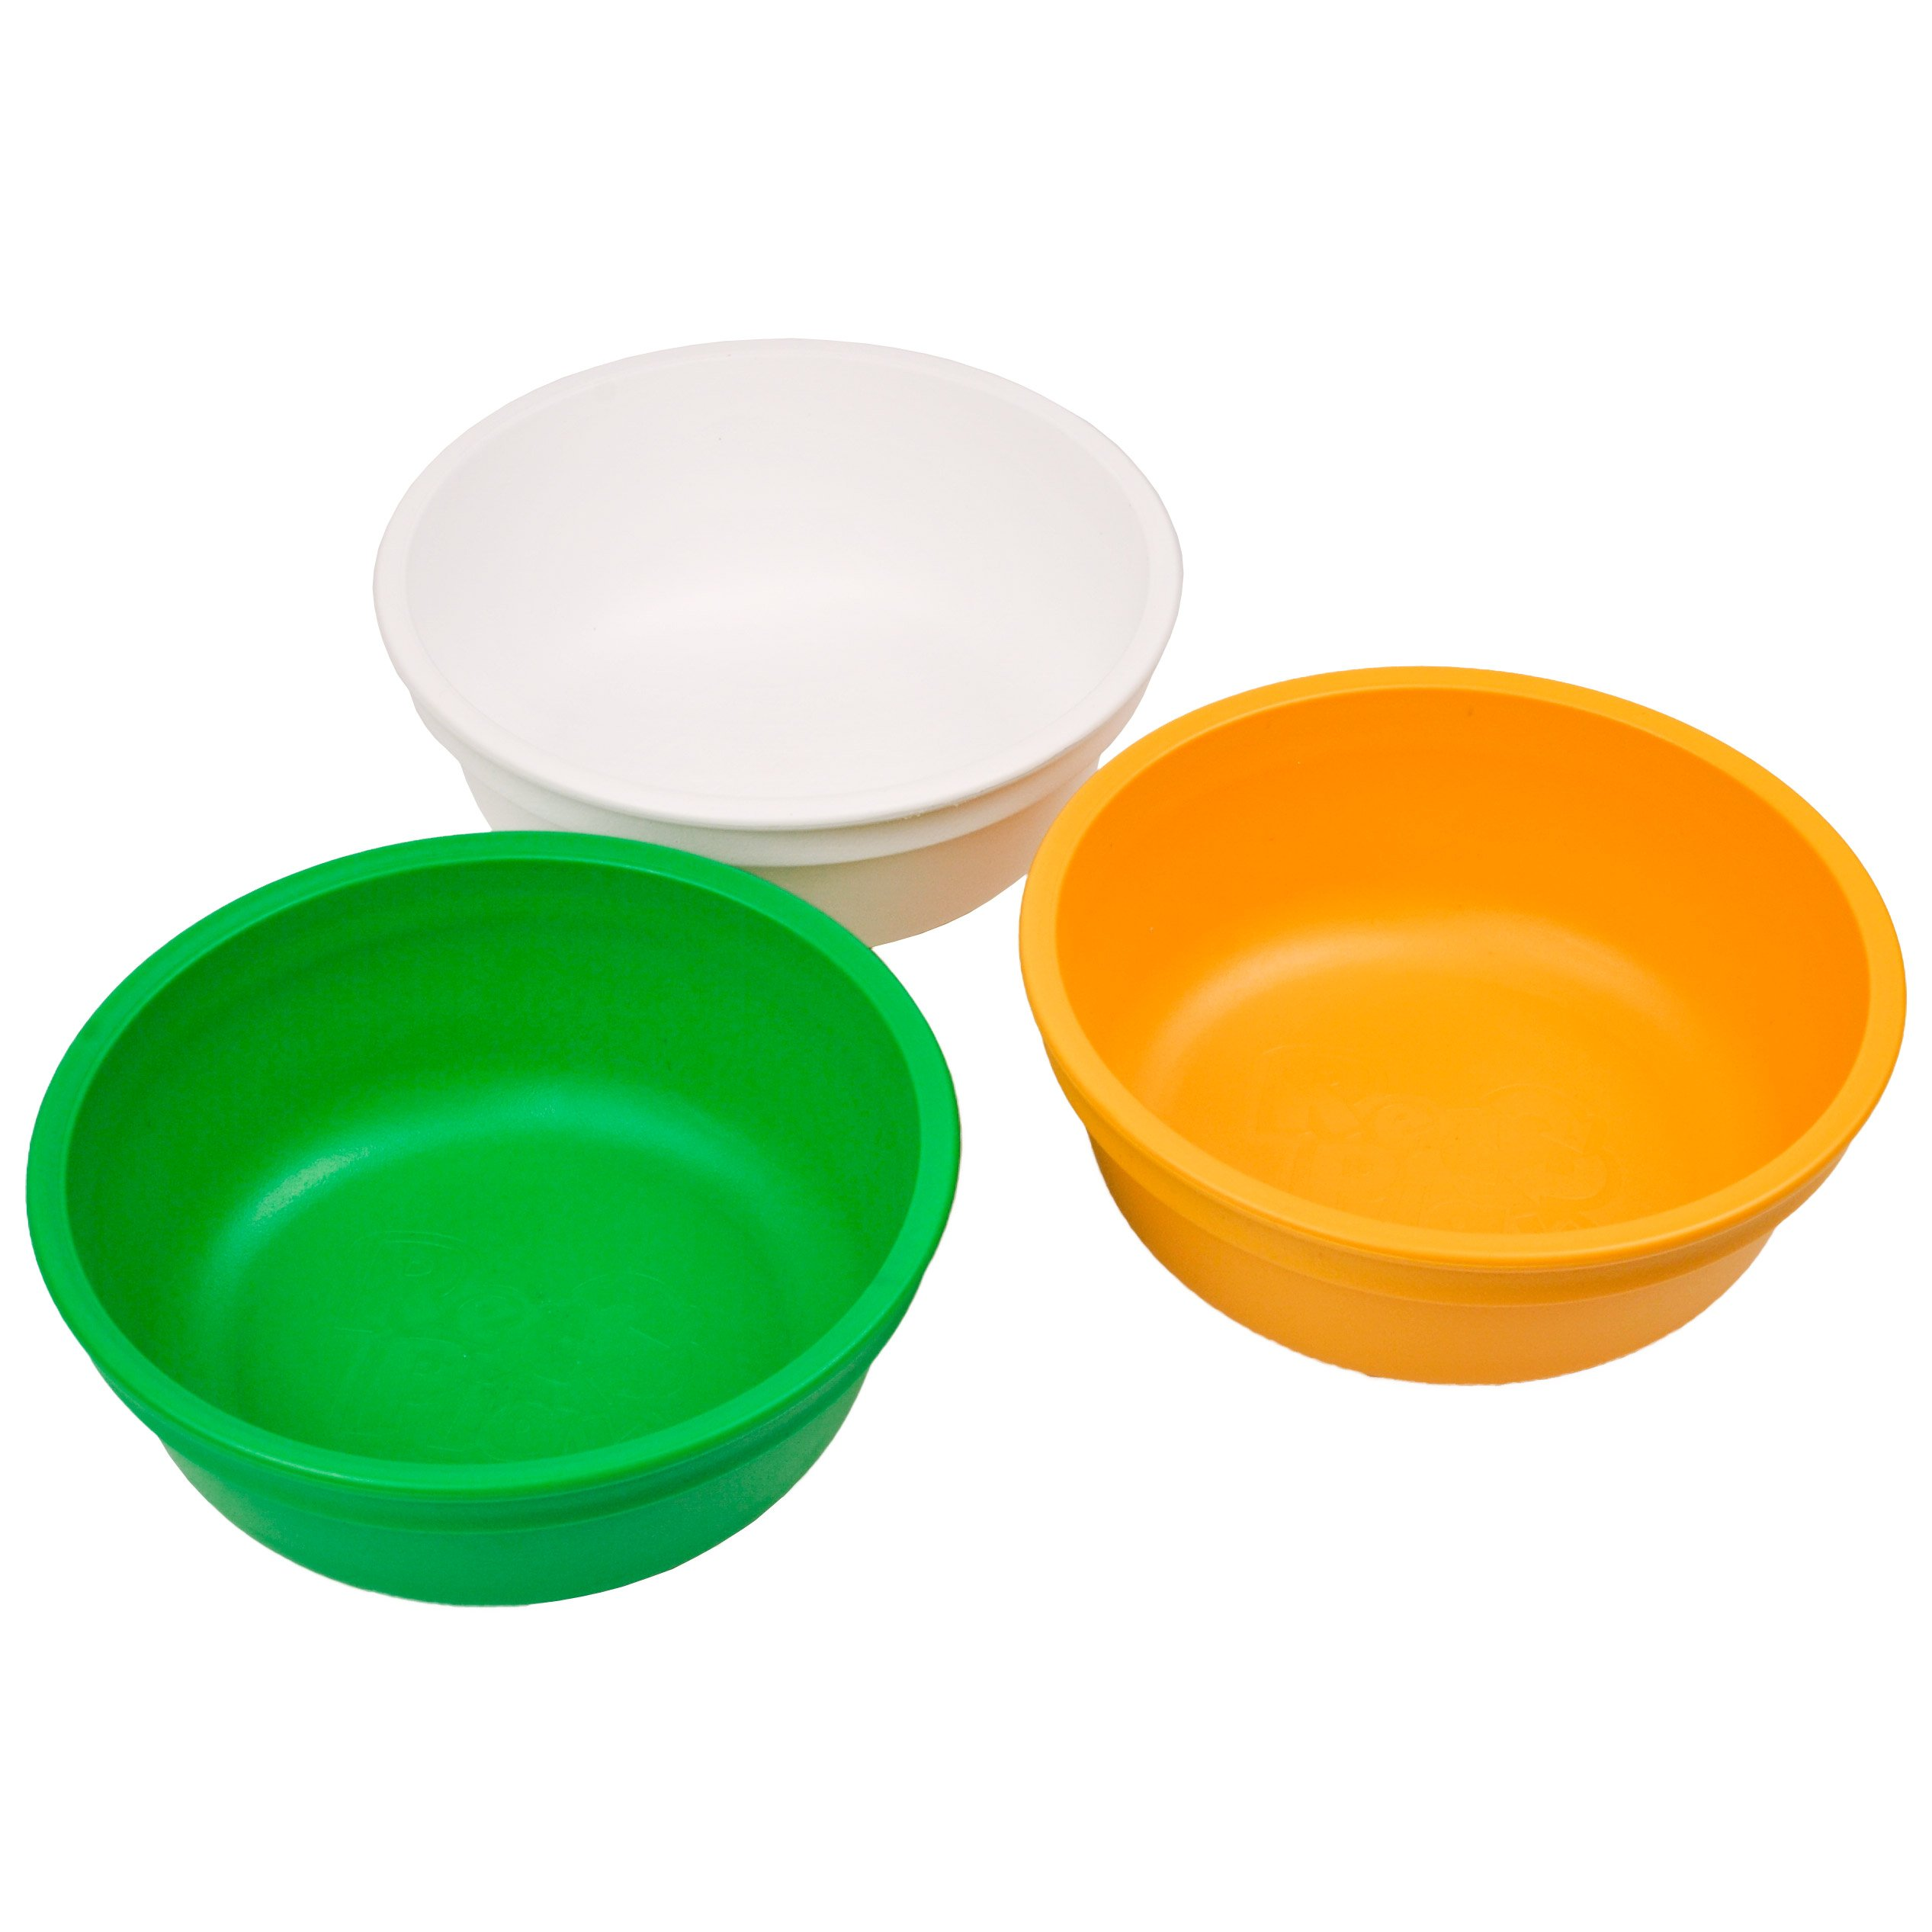 Re-Play Made in USA 3pk 12 oz. Bowls in White, Orange and Kelly Green   Made from Eco Friendly Heavyweight Recycled Milk Jugs and Polypropylene - Virtually Indestructible (St. Patrick's Day)